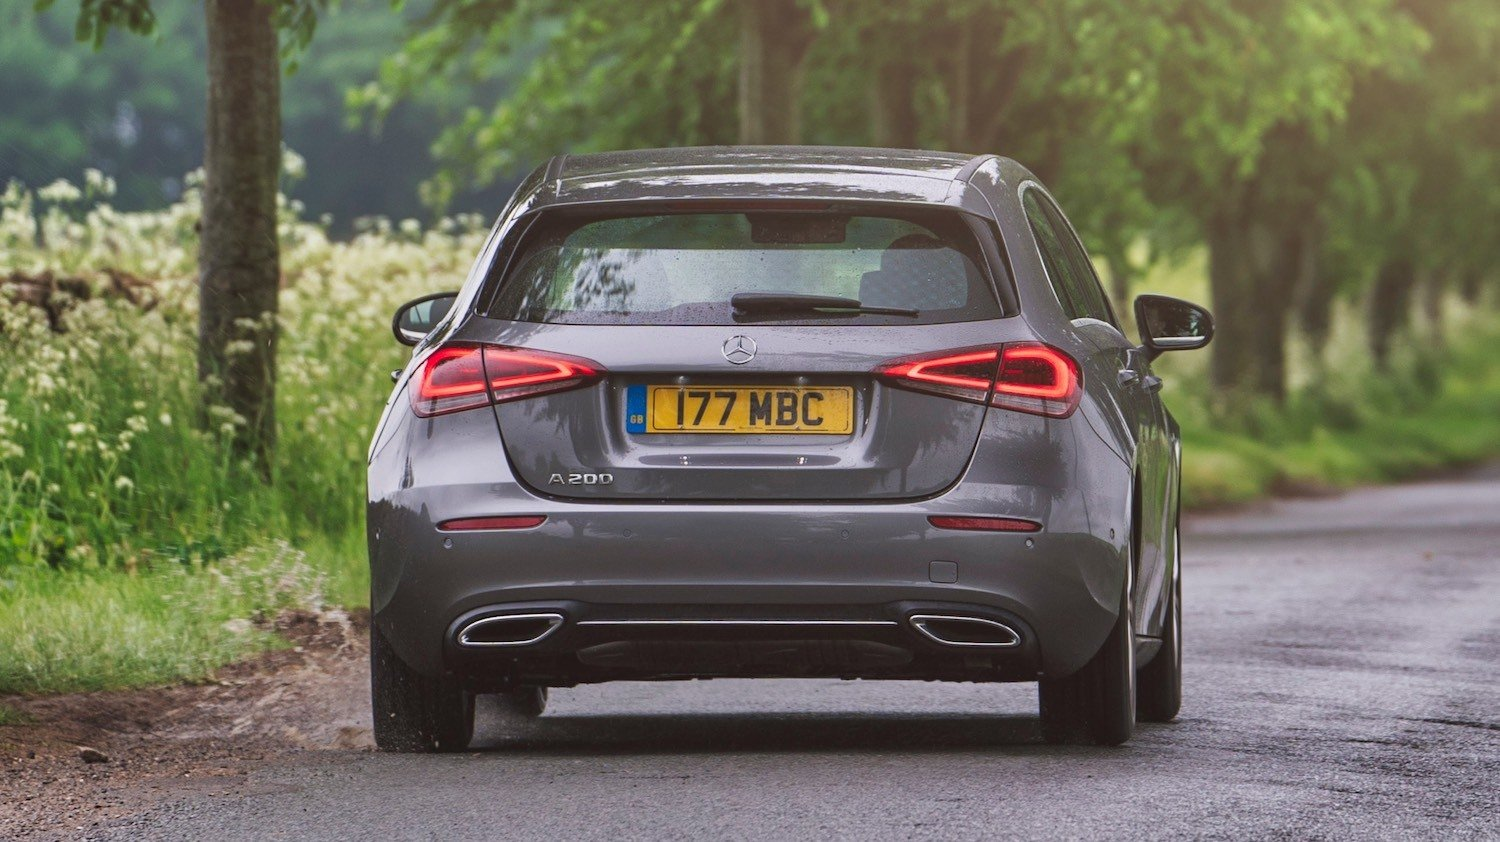 Tim Barnes-Clay reviews the New Mercedes-Benz A-Class 22